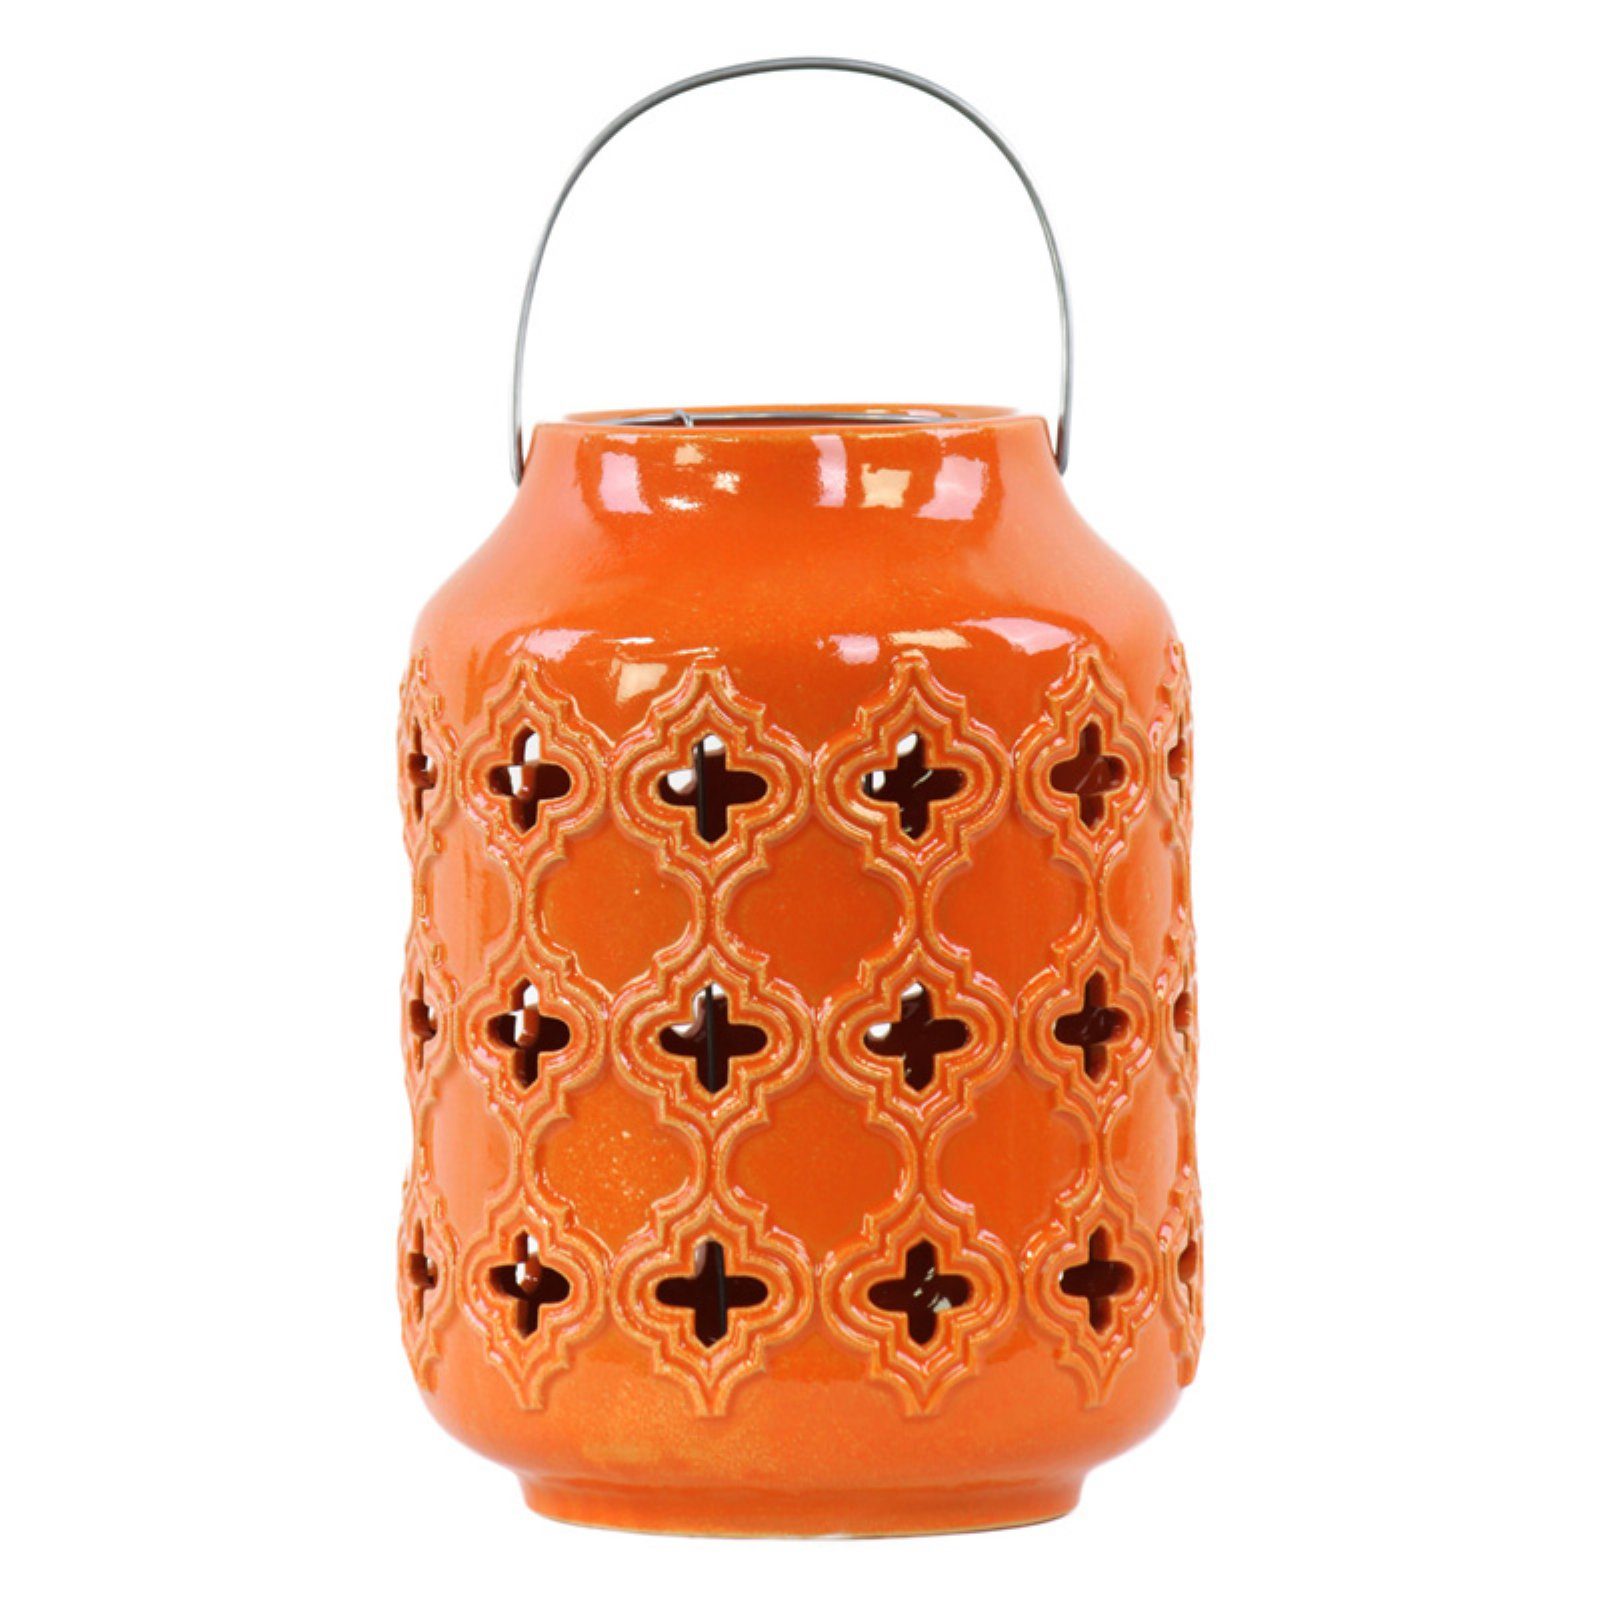 Urban Trends Collection: Ceramic Hand Lantern, Gloss Finish, Blue